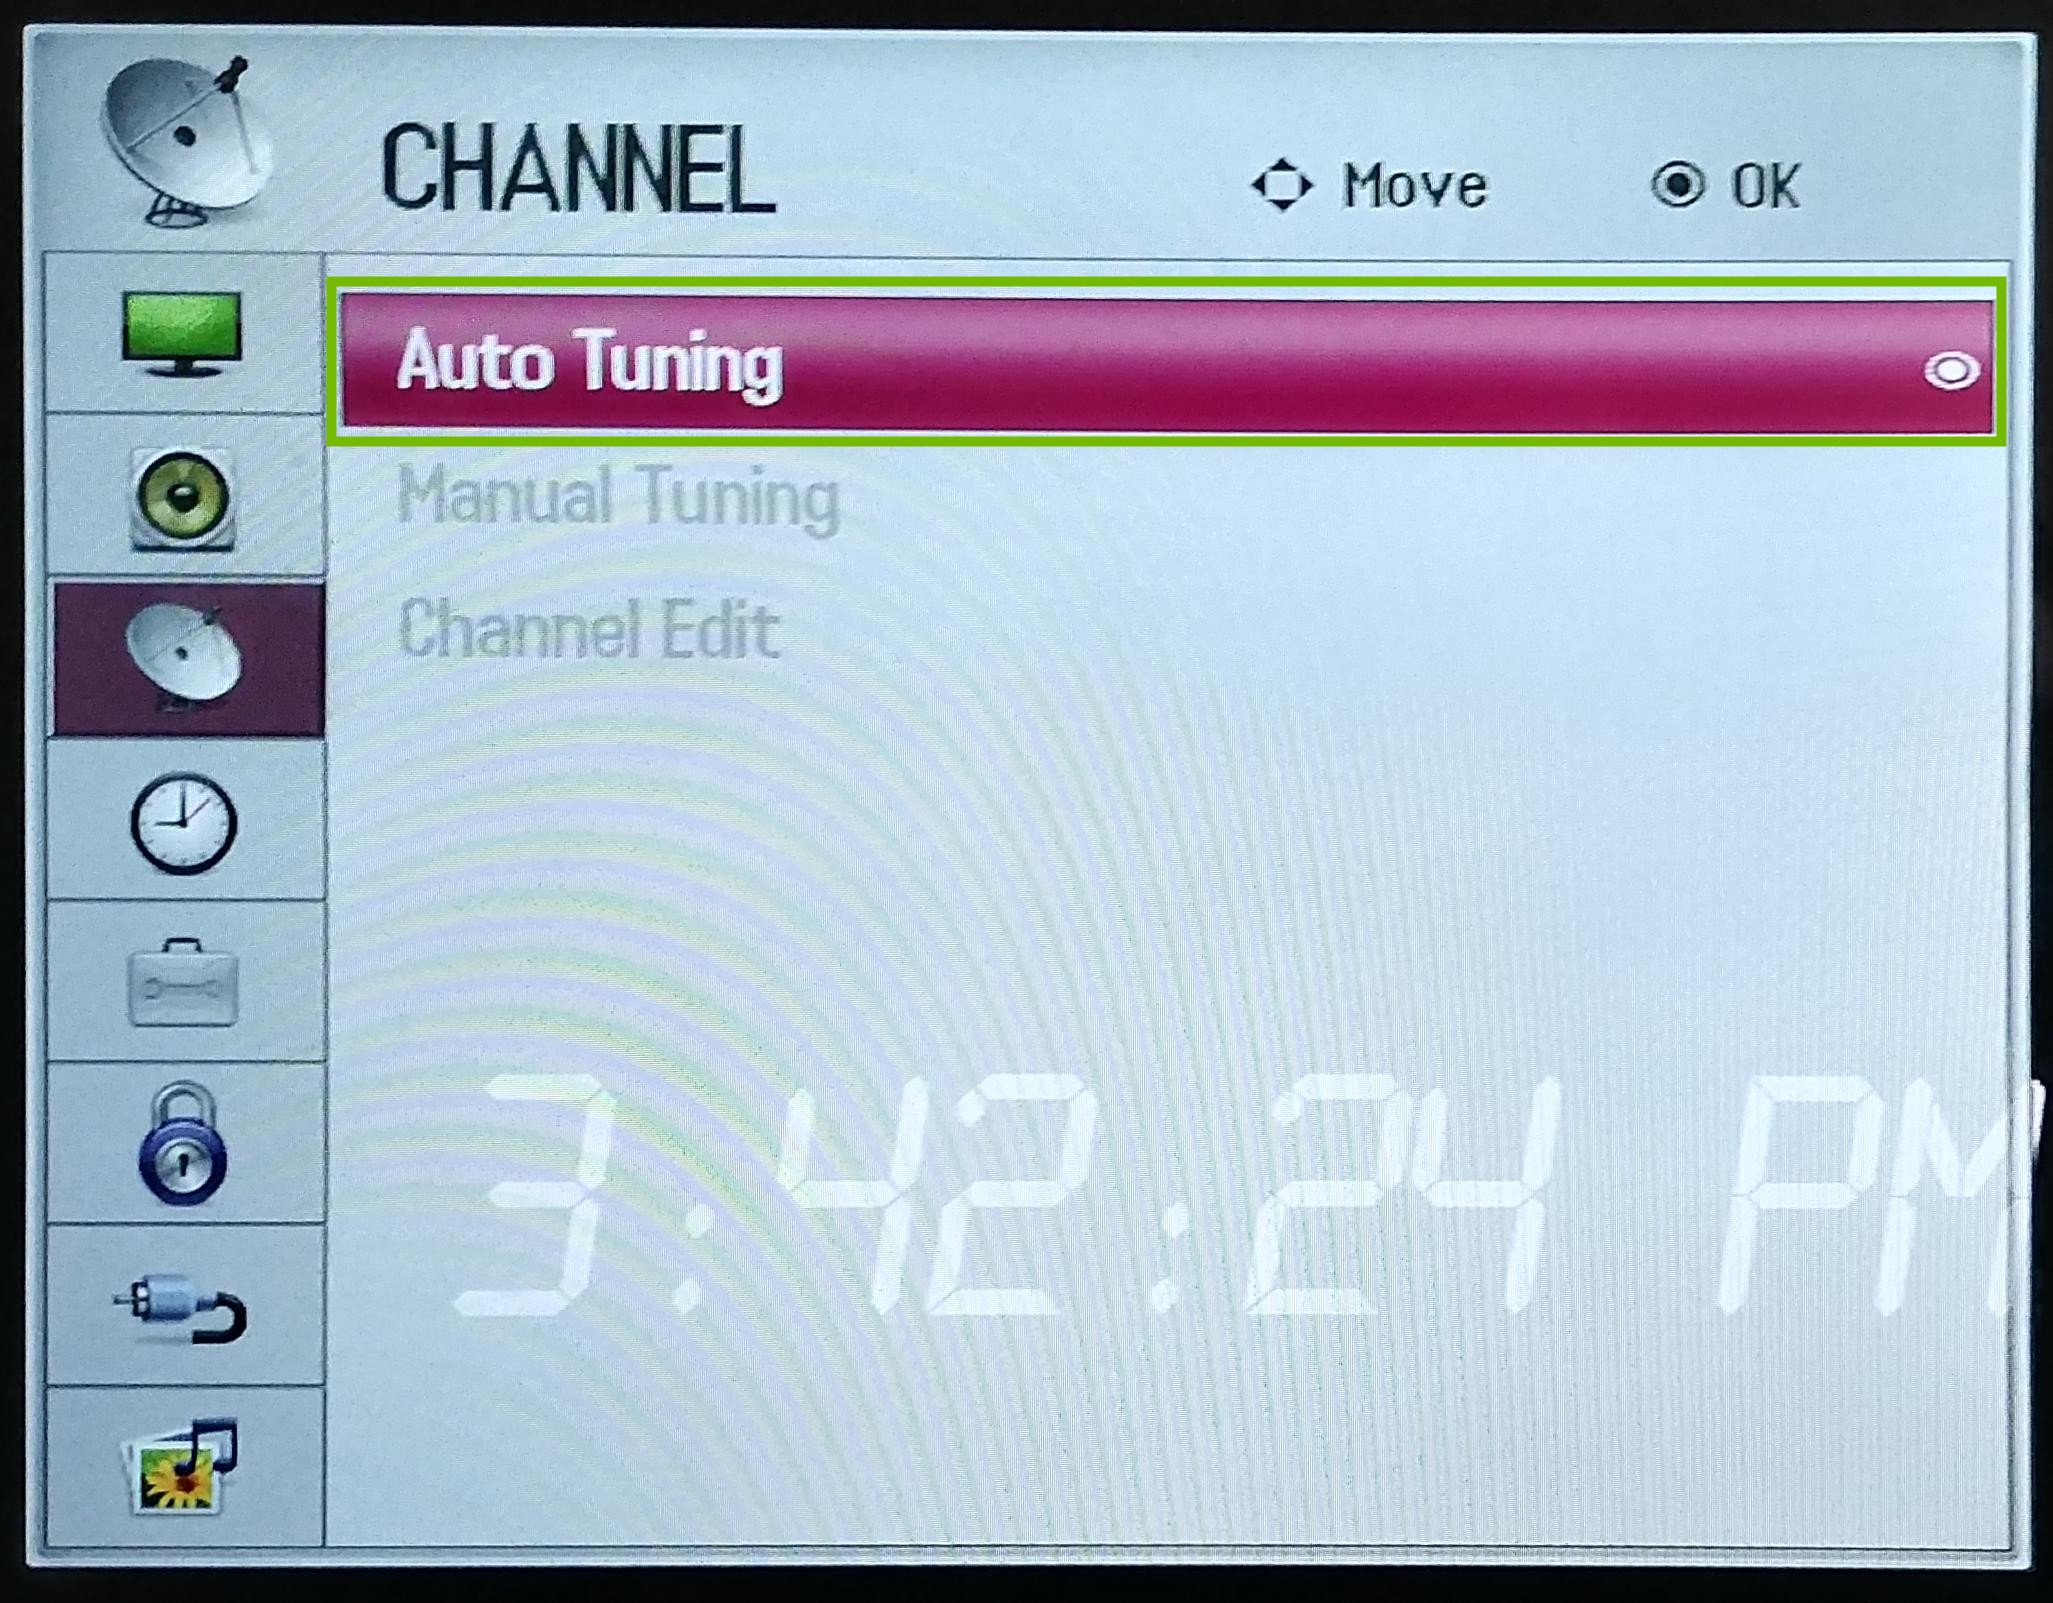 Channel settings with Auto Tuning highlighted.